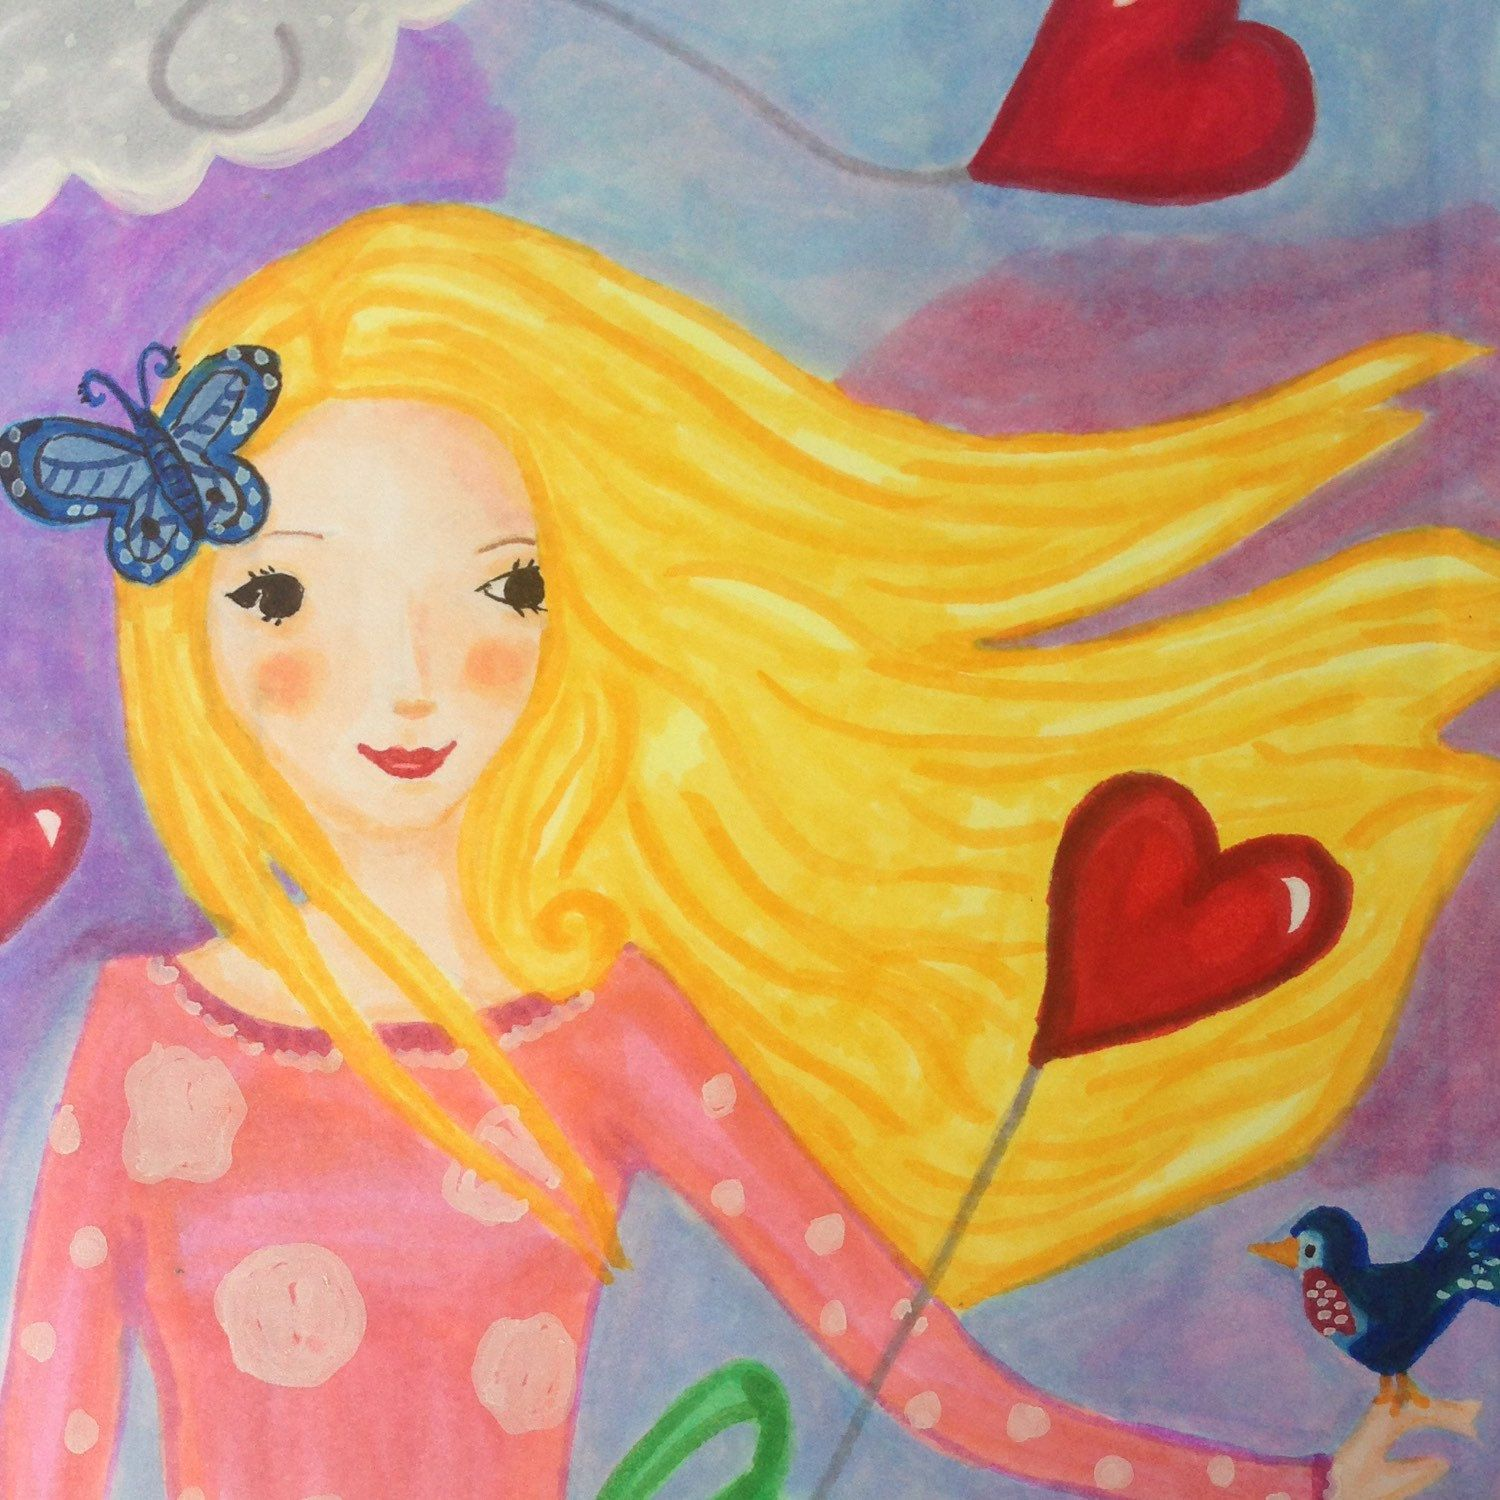 Illustration #postcard #girl #balloons #colorful drawing